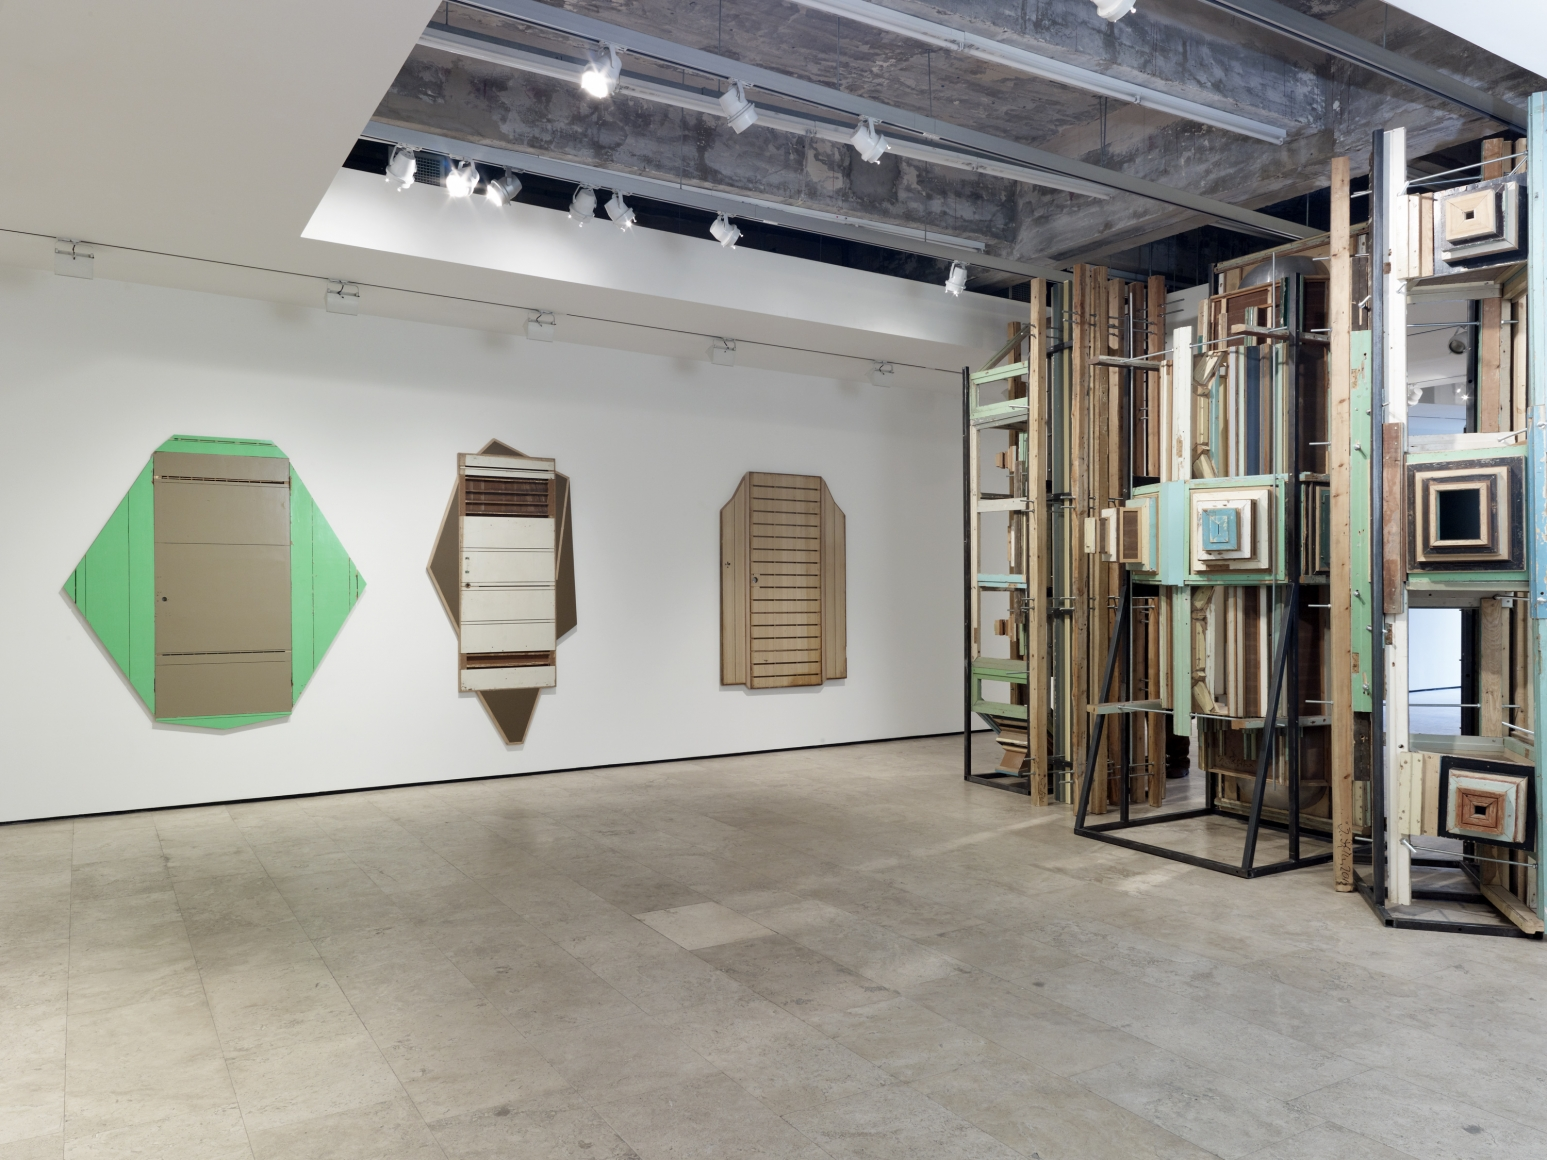 LIU WEI Installation view, Lehmann Maupin, 540 West 26th Street